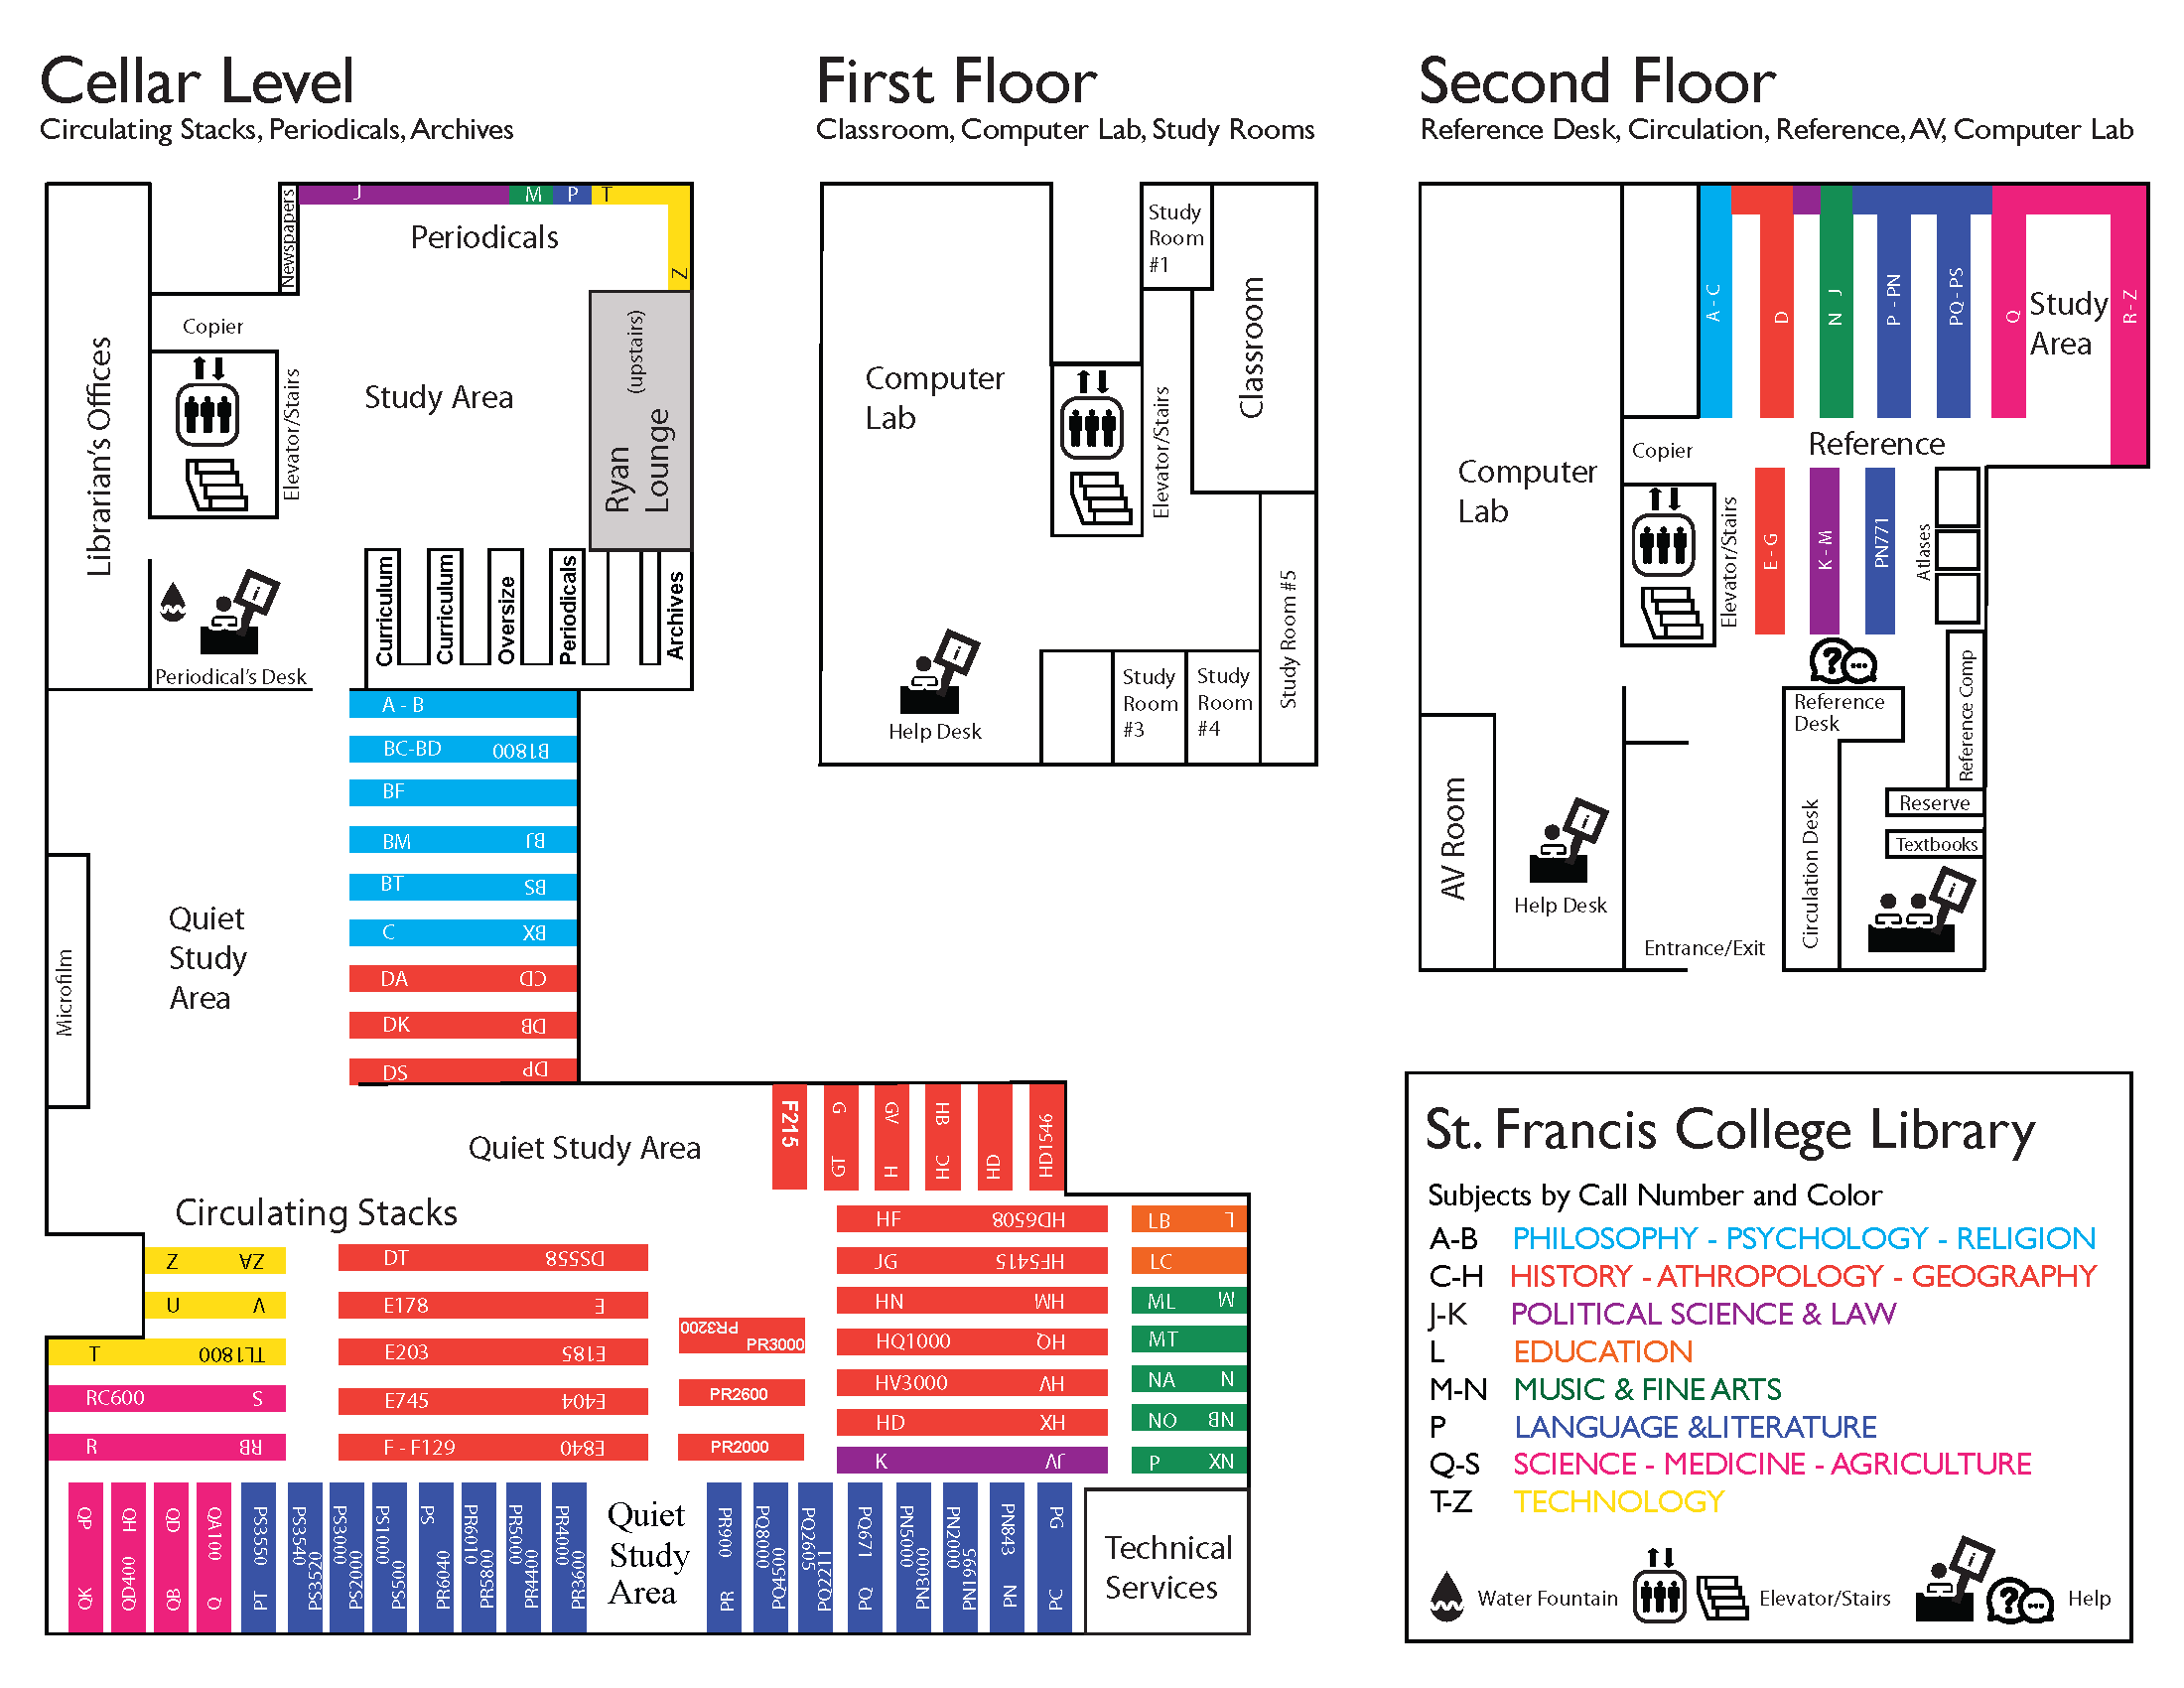 SFC Library Map